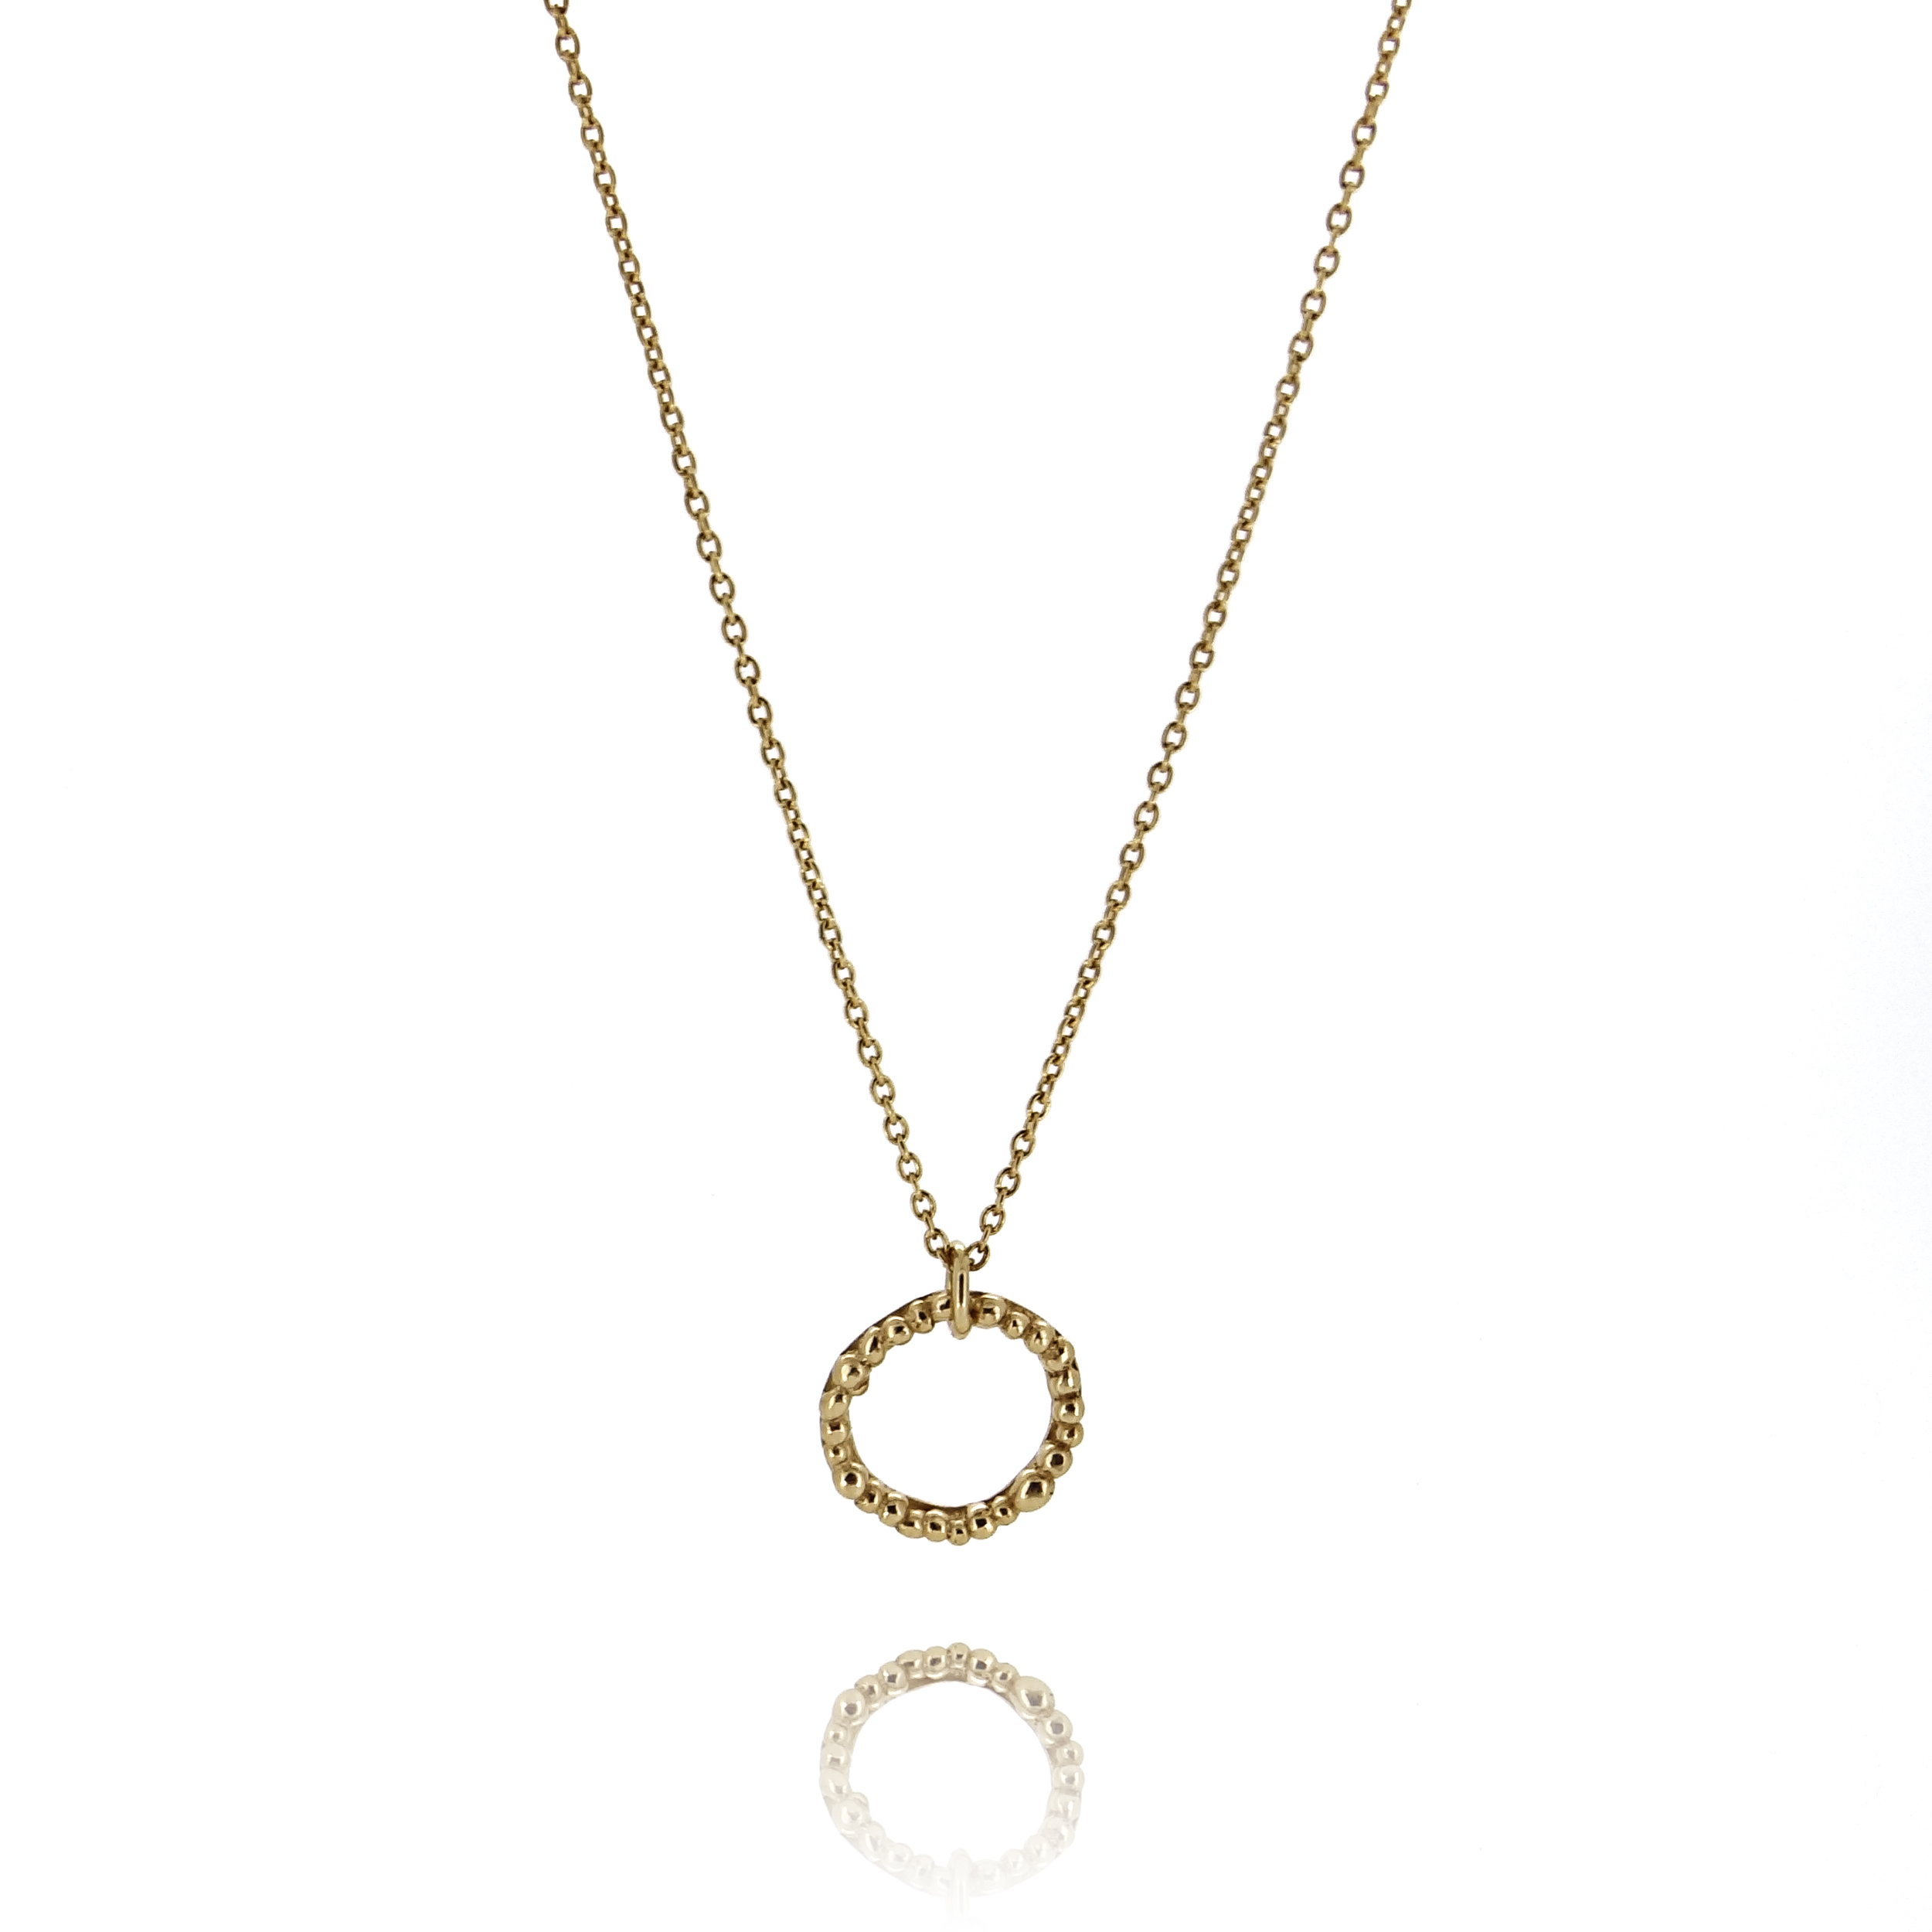 malcolm morris necklace 1 gold.jpg